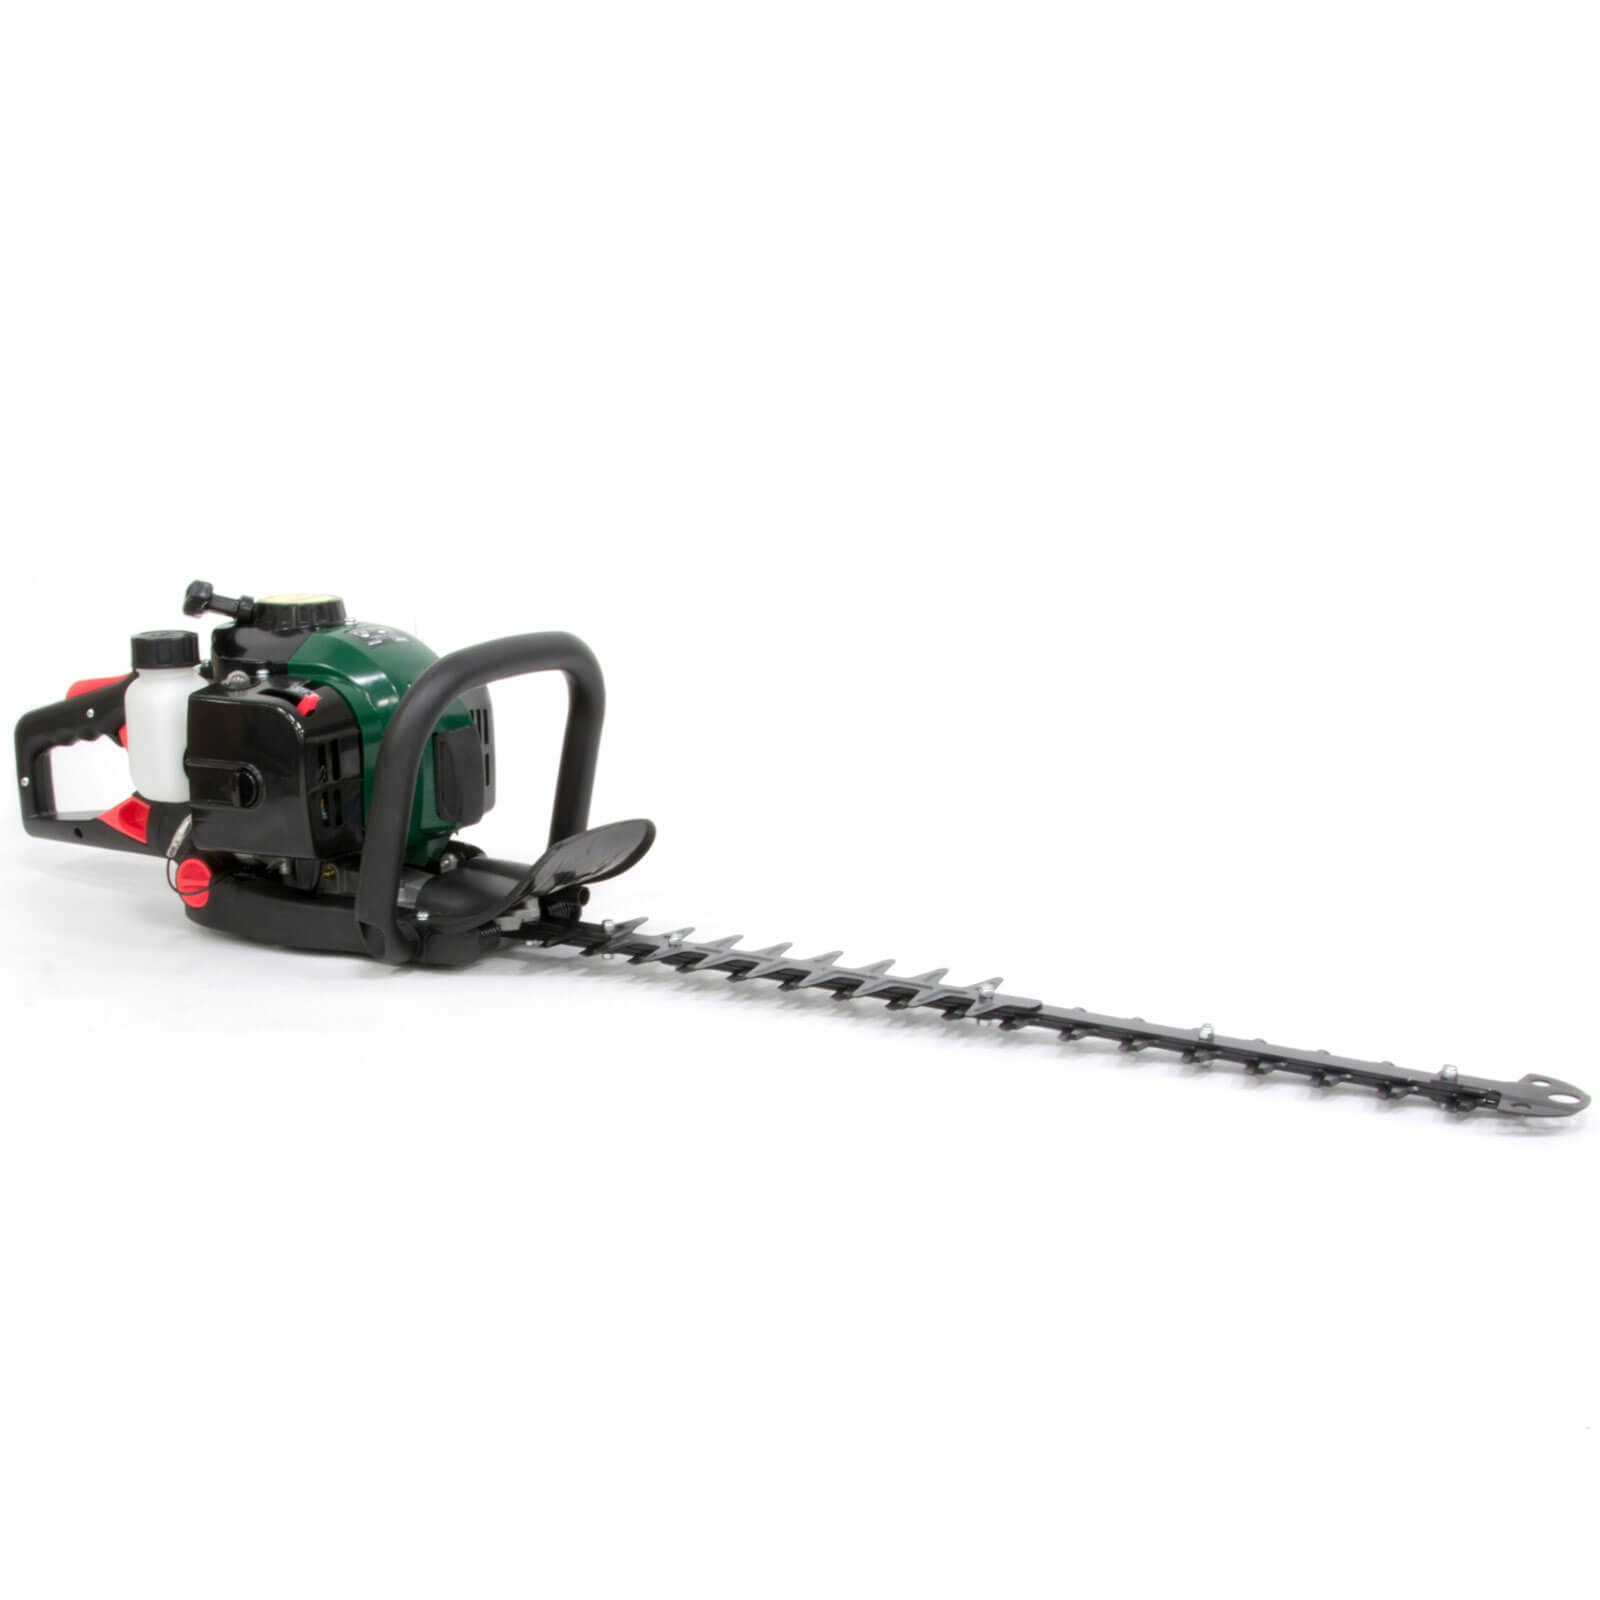 Webb WEHC600 Petrol Hedge Trimmer 560mm